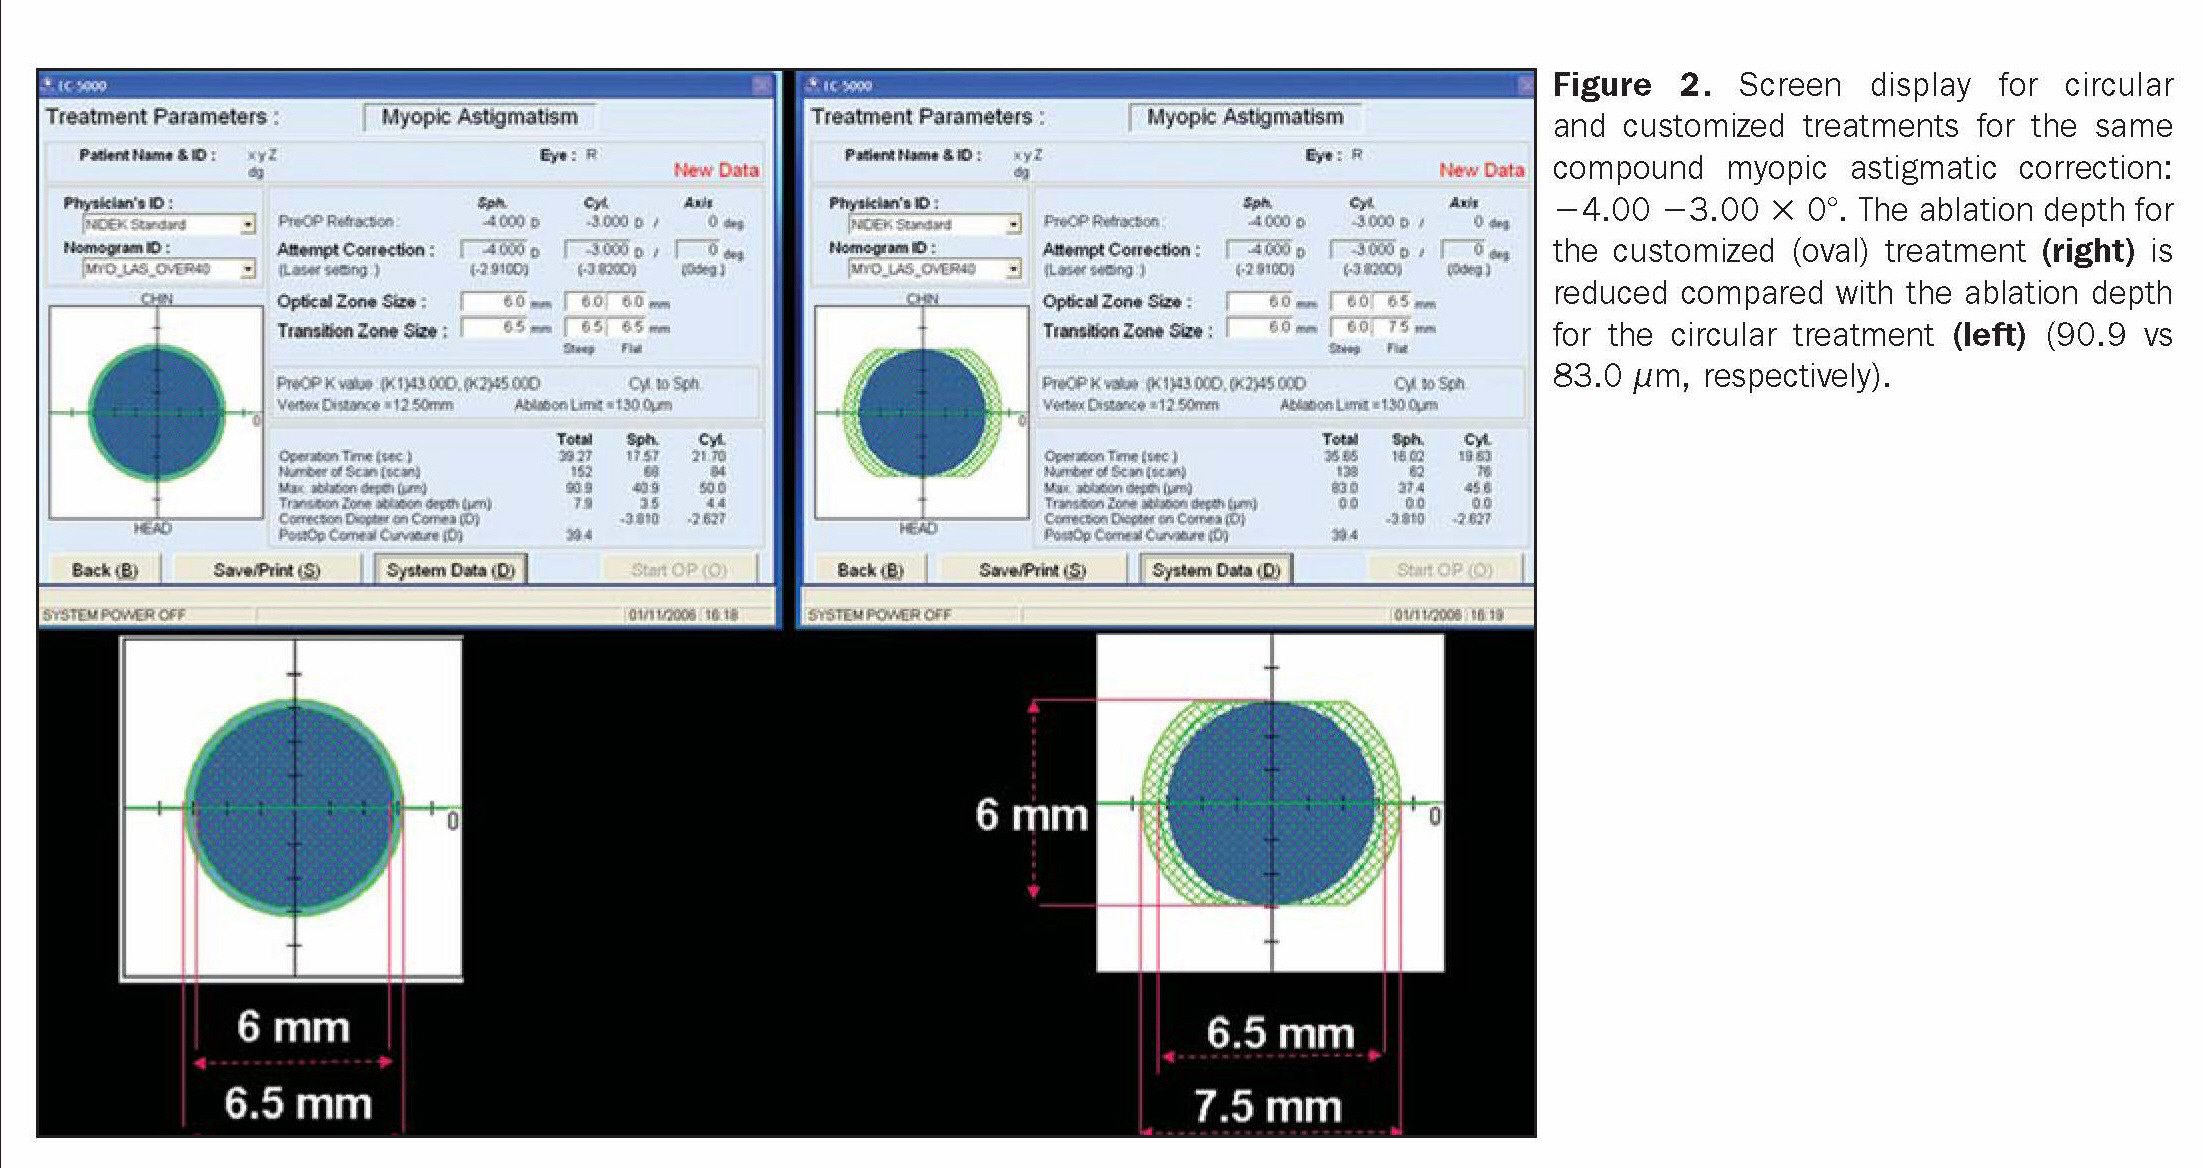 Figure 2. Screen display for circular and customized treatments for the same compound myopic astigmatic correction: -4.00 -3.00 × 0°. The ablation depth for the customized (oval) treatment (right) is reduced compared with the ablation depth for the circular treatment (left) (90.9 vs 83.0 µm, respectively).